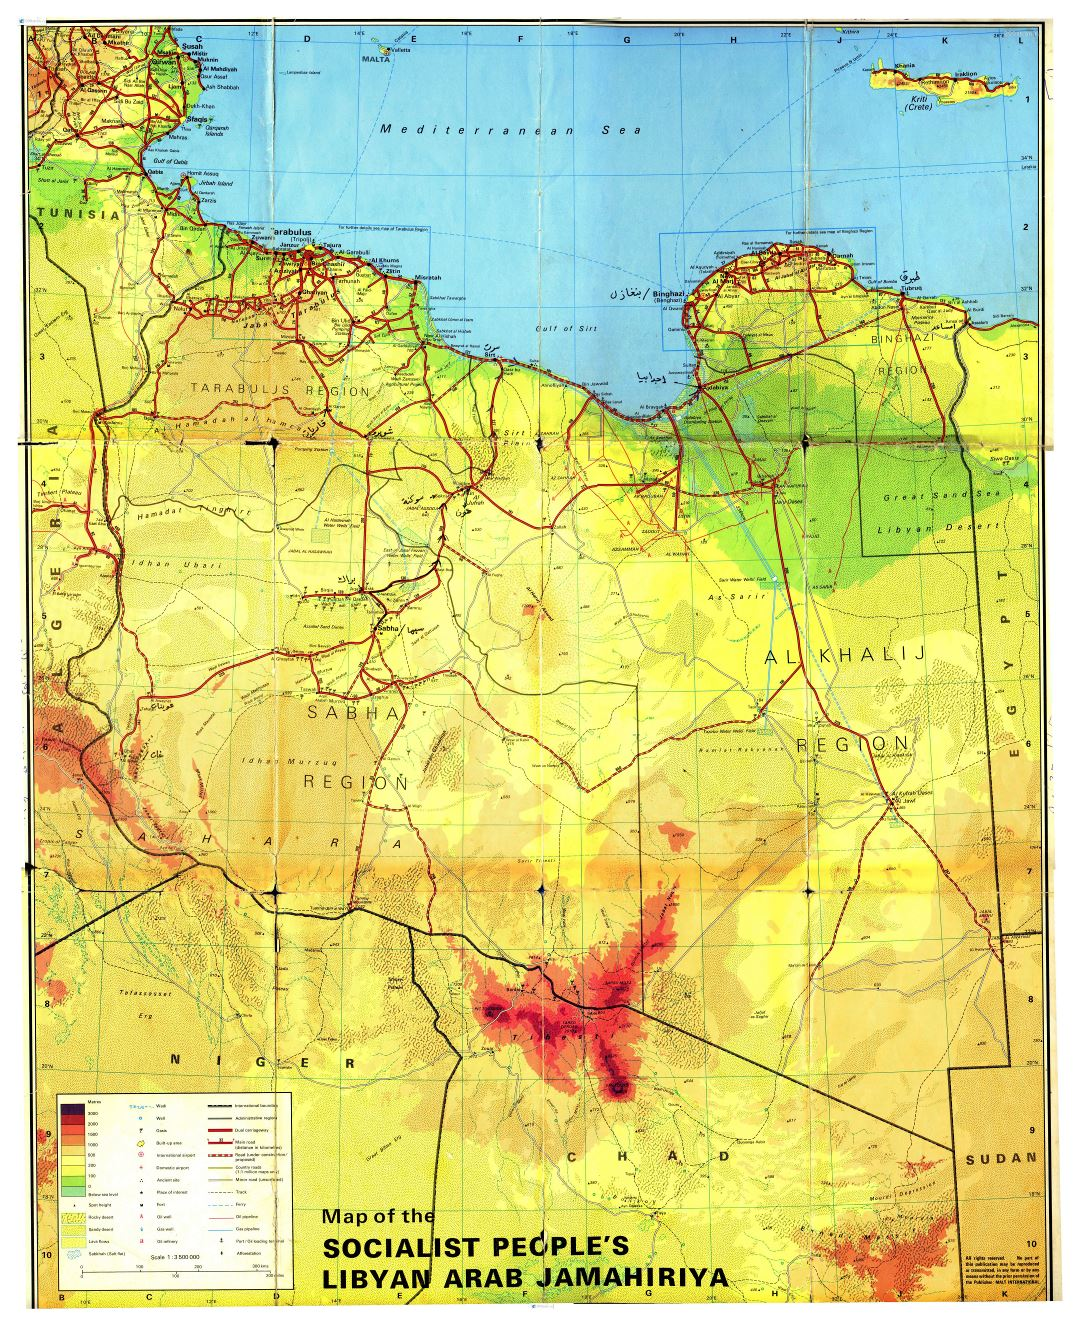 Large scale physical map of Libya with roads, cities and other marks